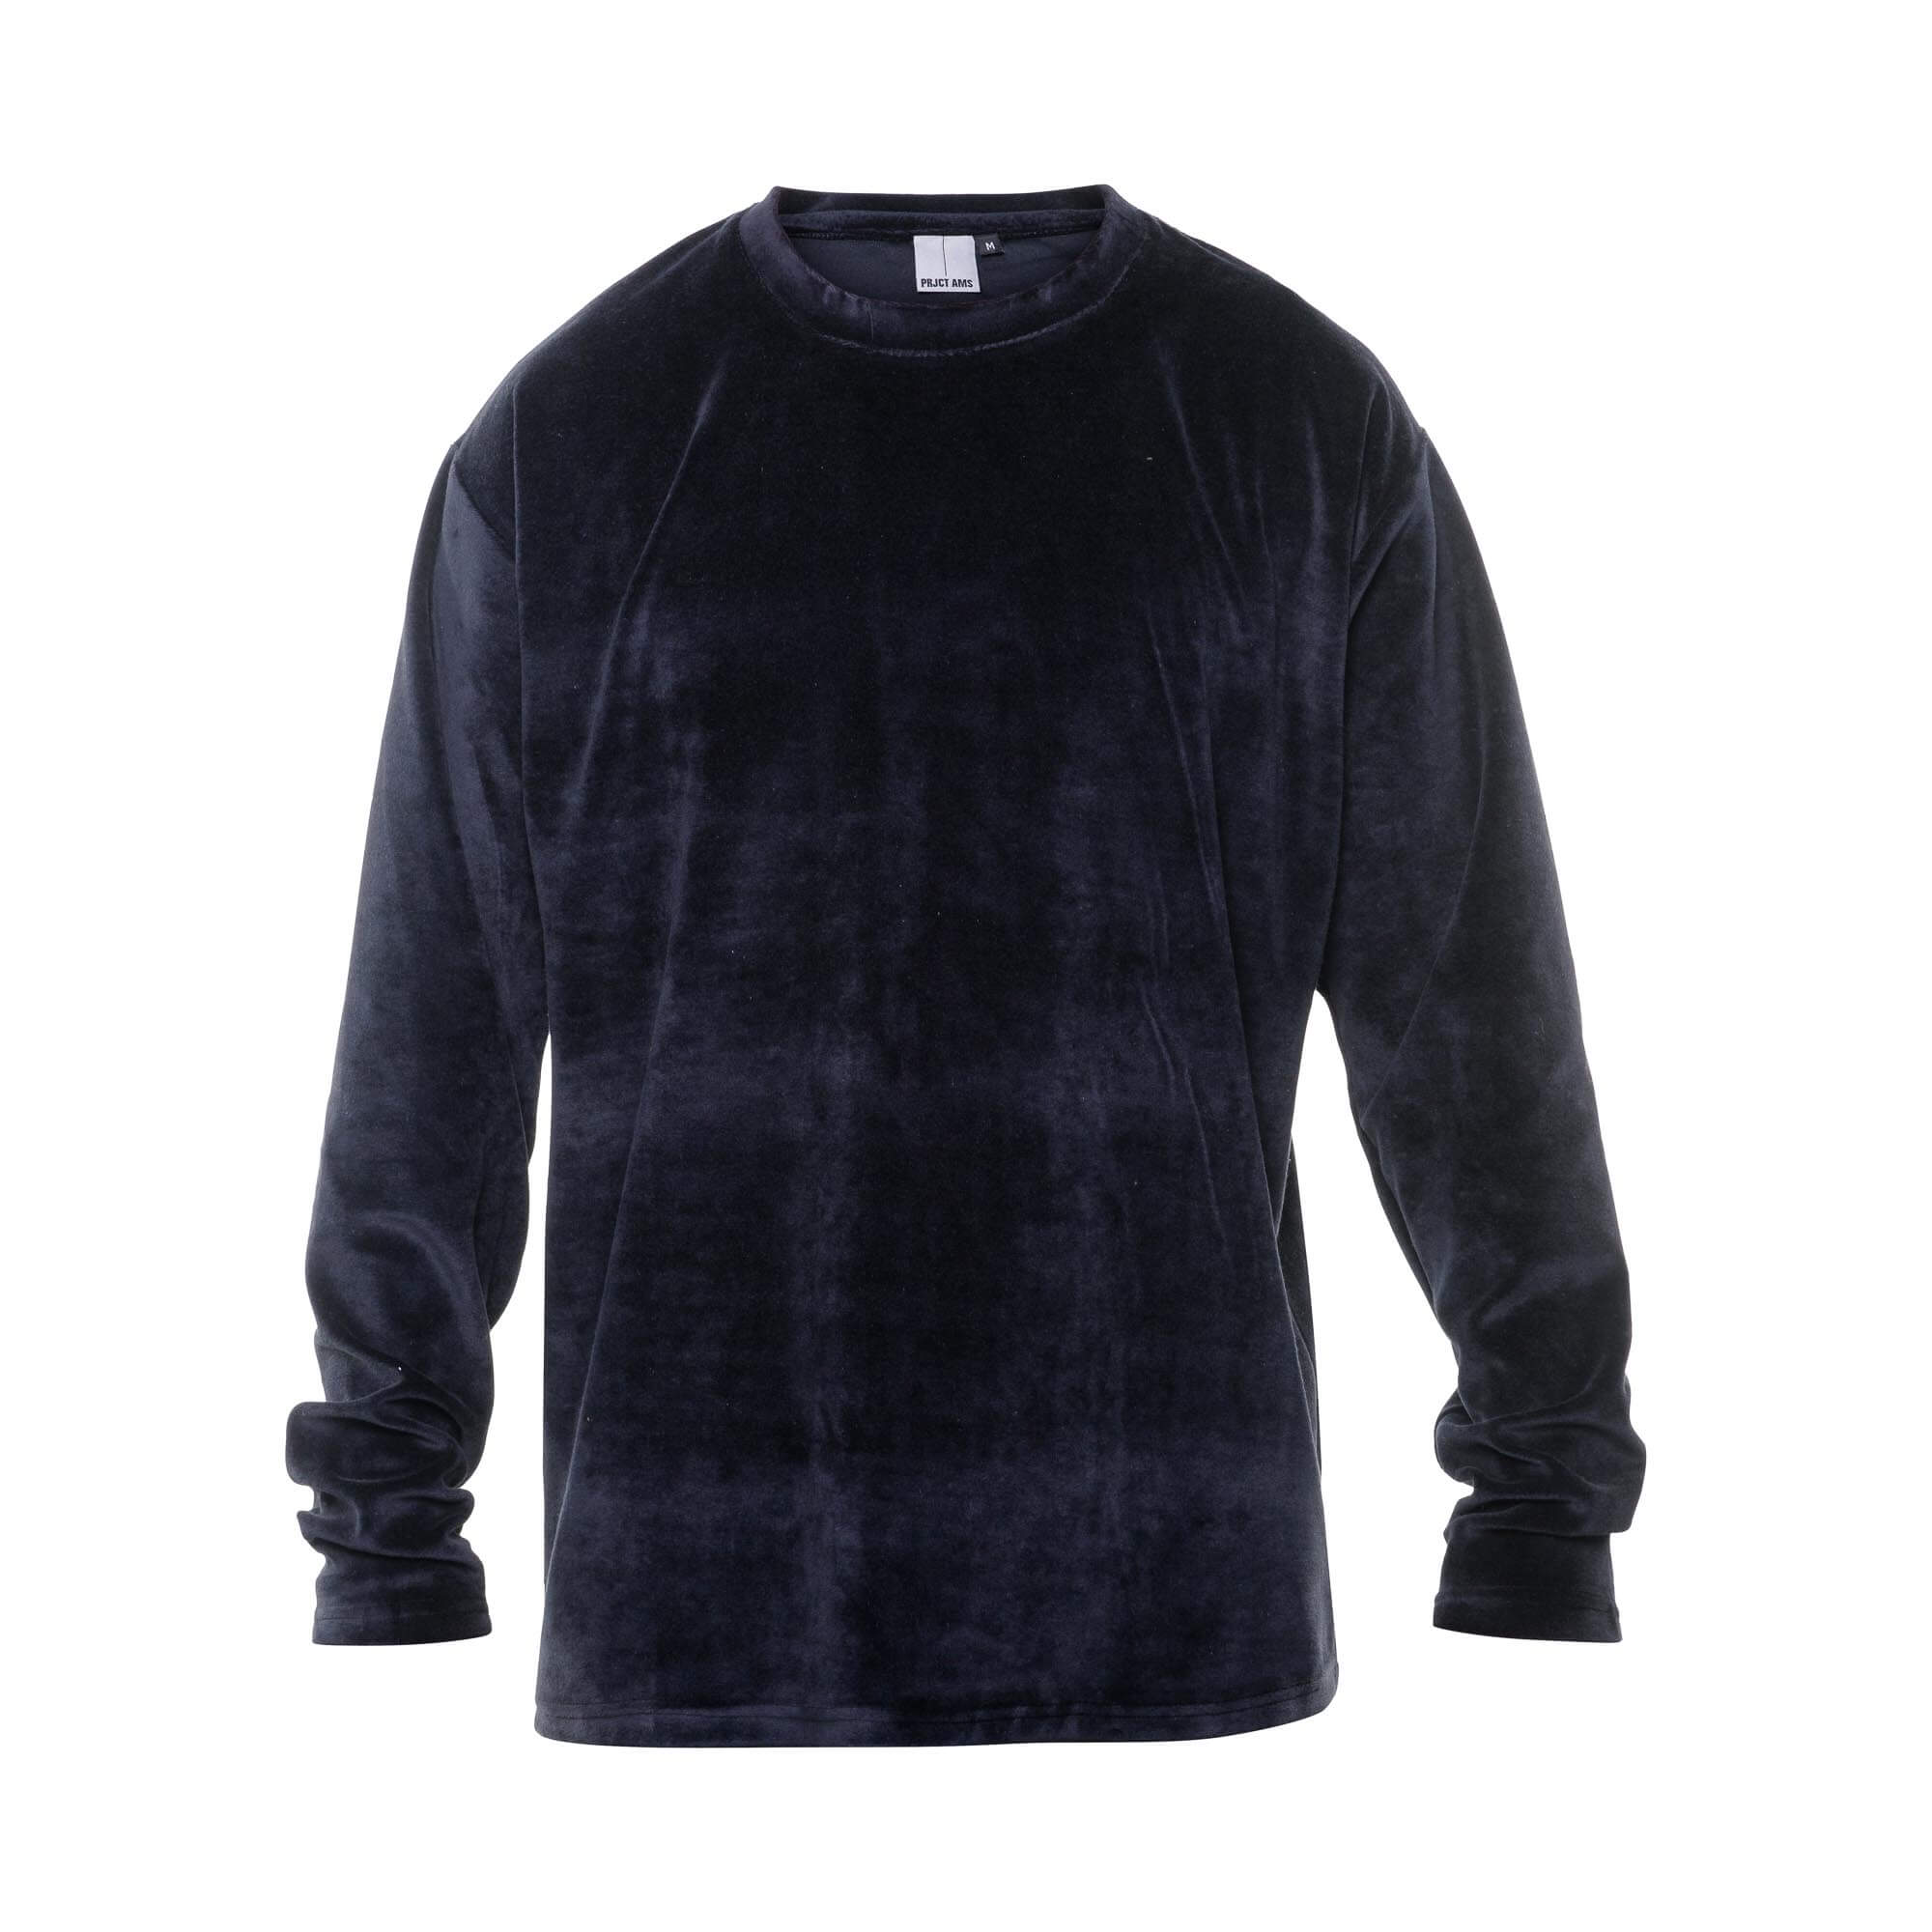 velvet sweater black